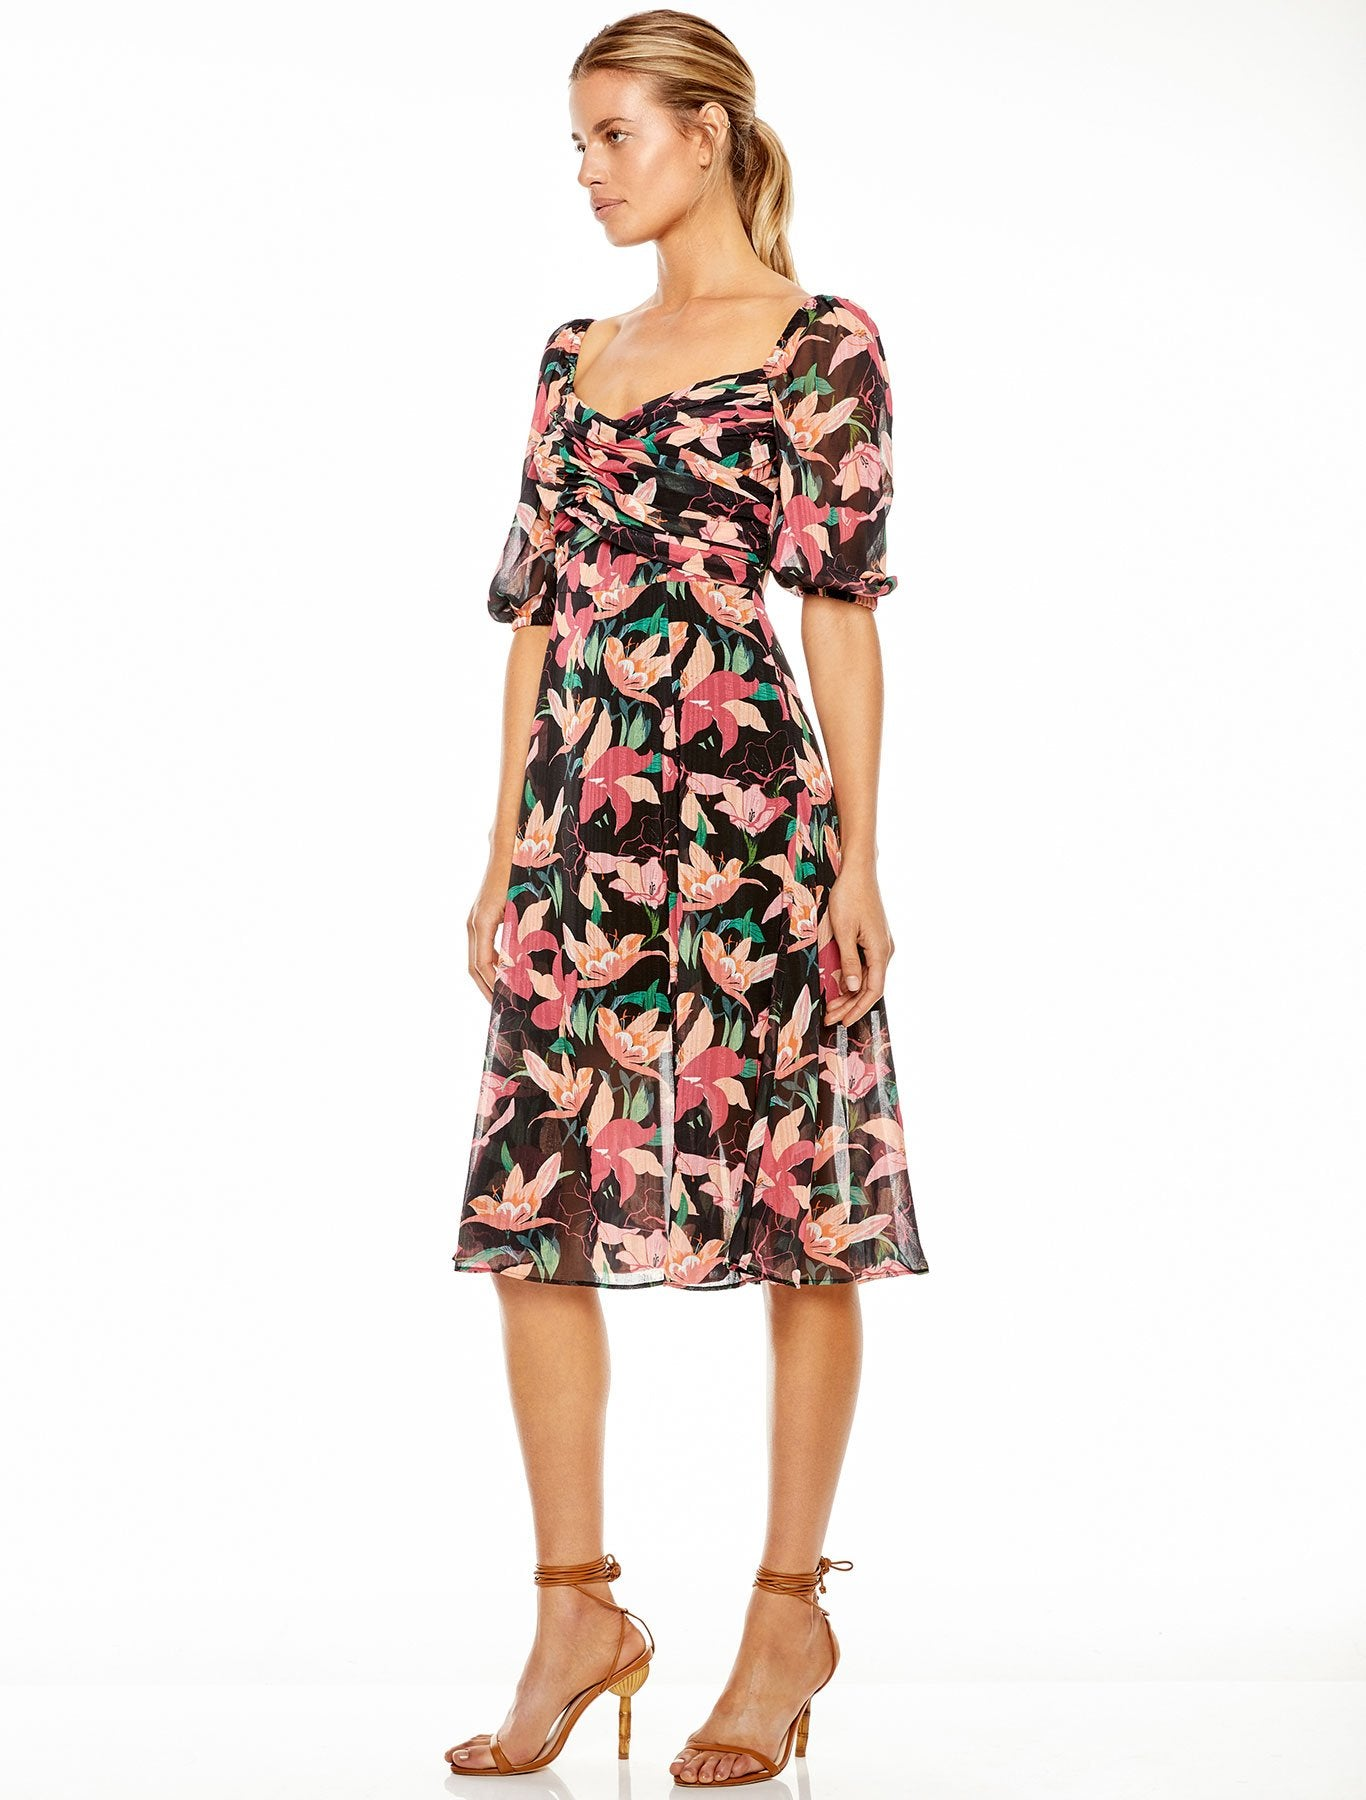 NIGHT MIRAGE MIDI DRESS